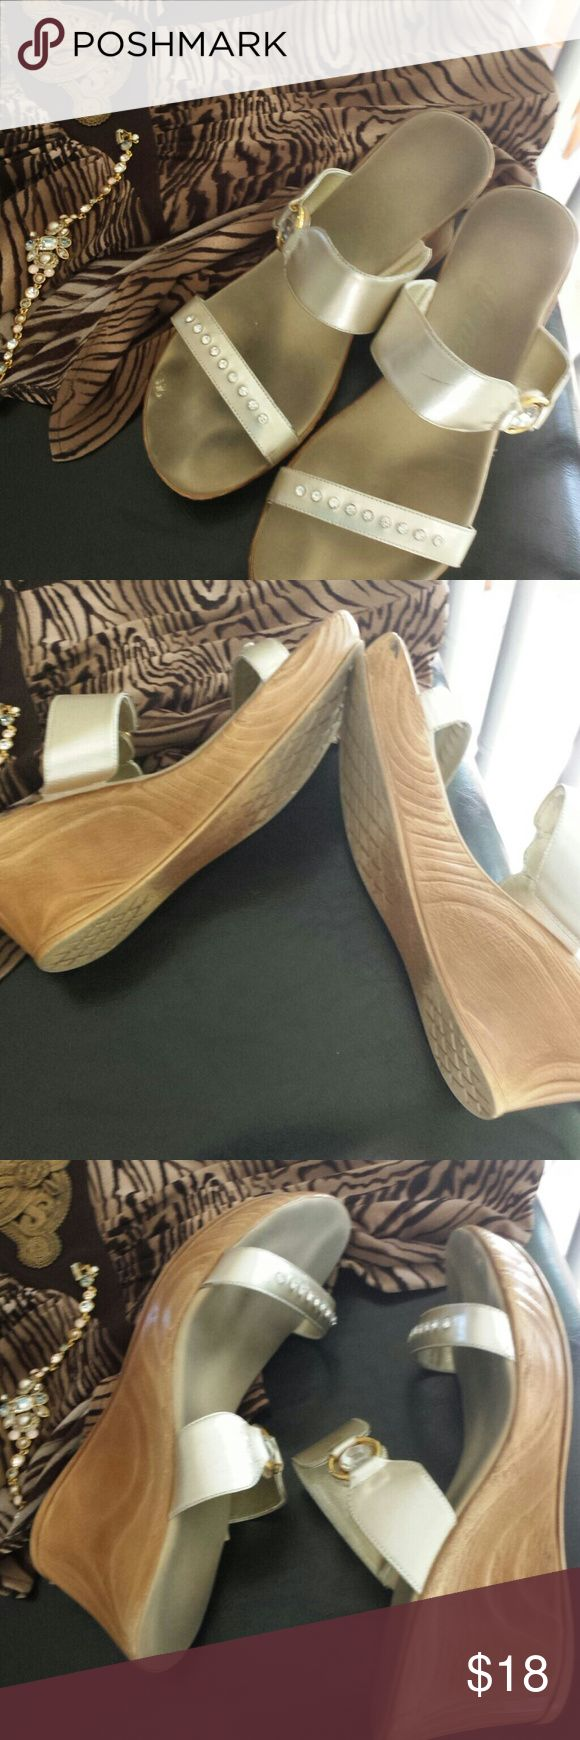 """Platinum Onex sandals Dress up in comfort with these classy sandals. I no longer reach for them..no more heels for me.. it's sad! 2 1/2"""" heel. Like walking on a cloud. Onex Shoes Platforms"""